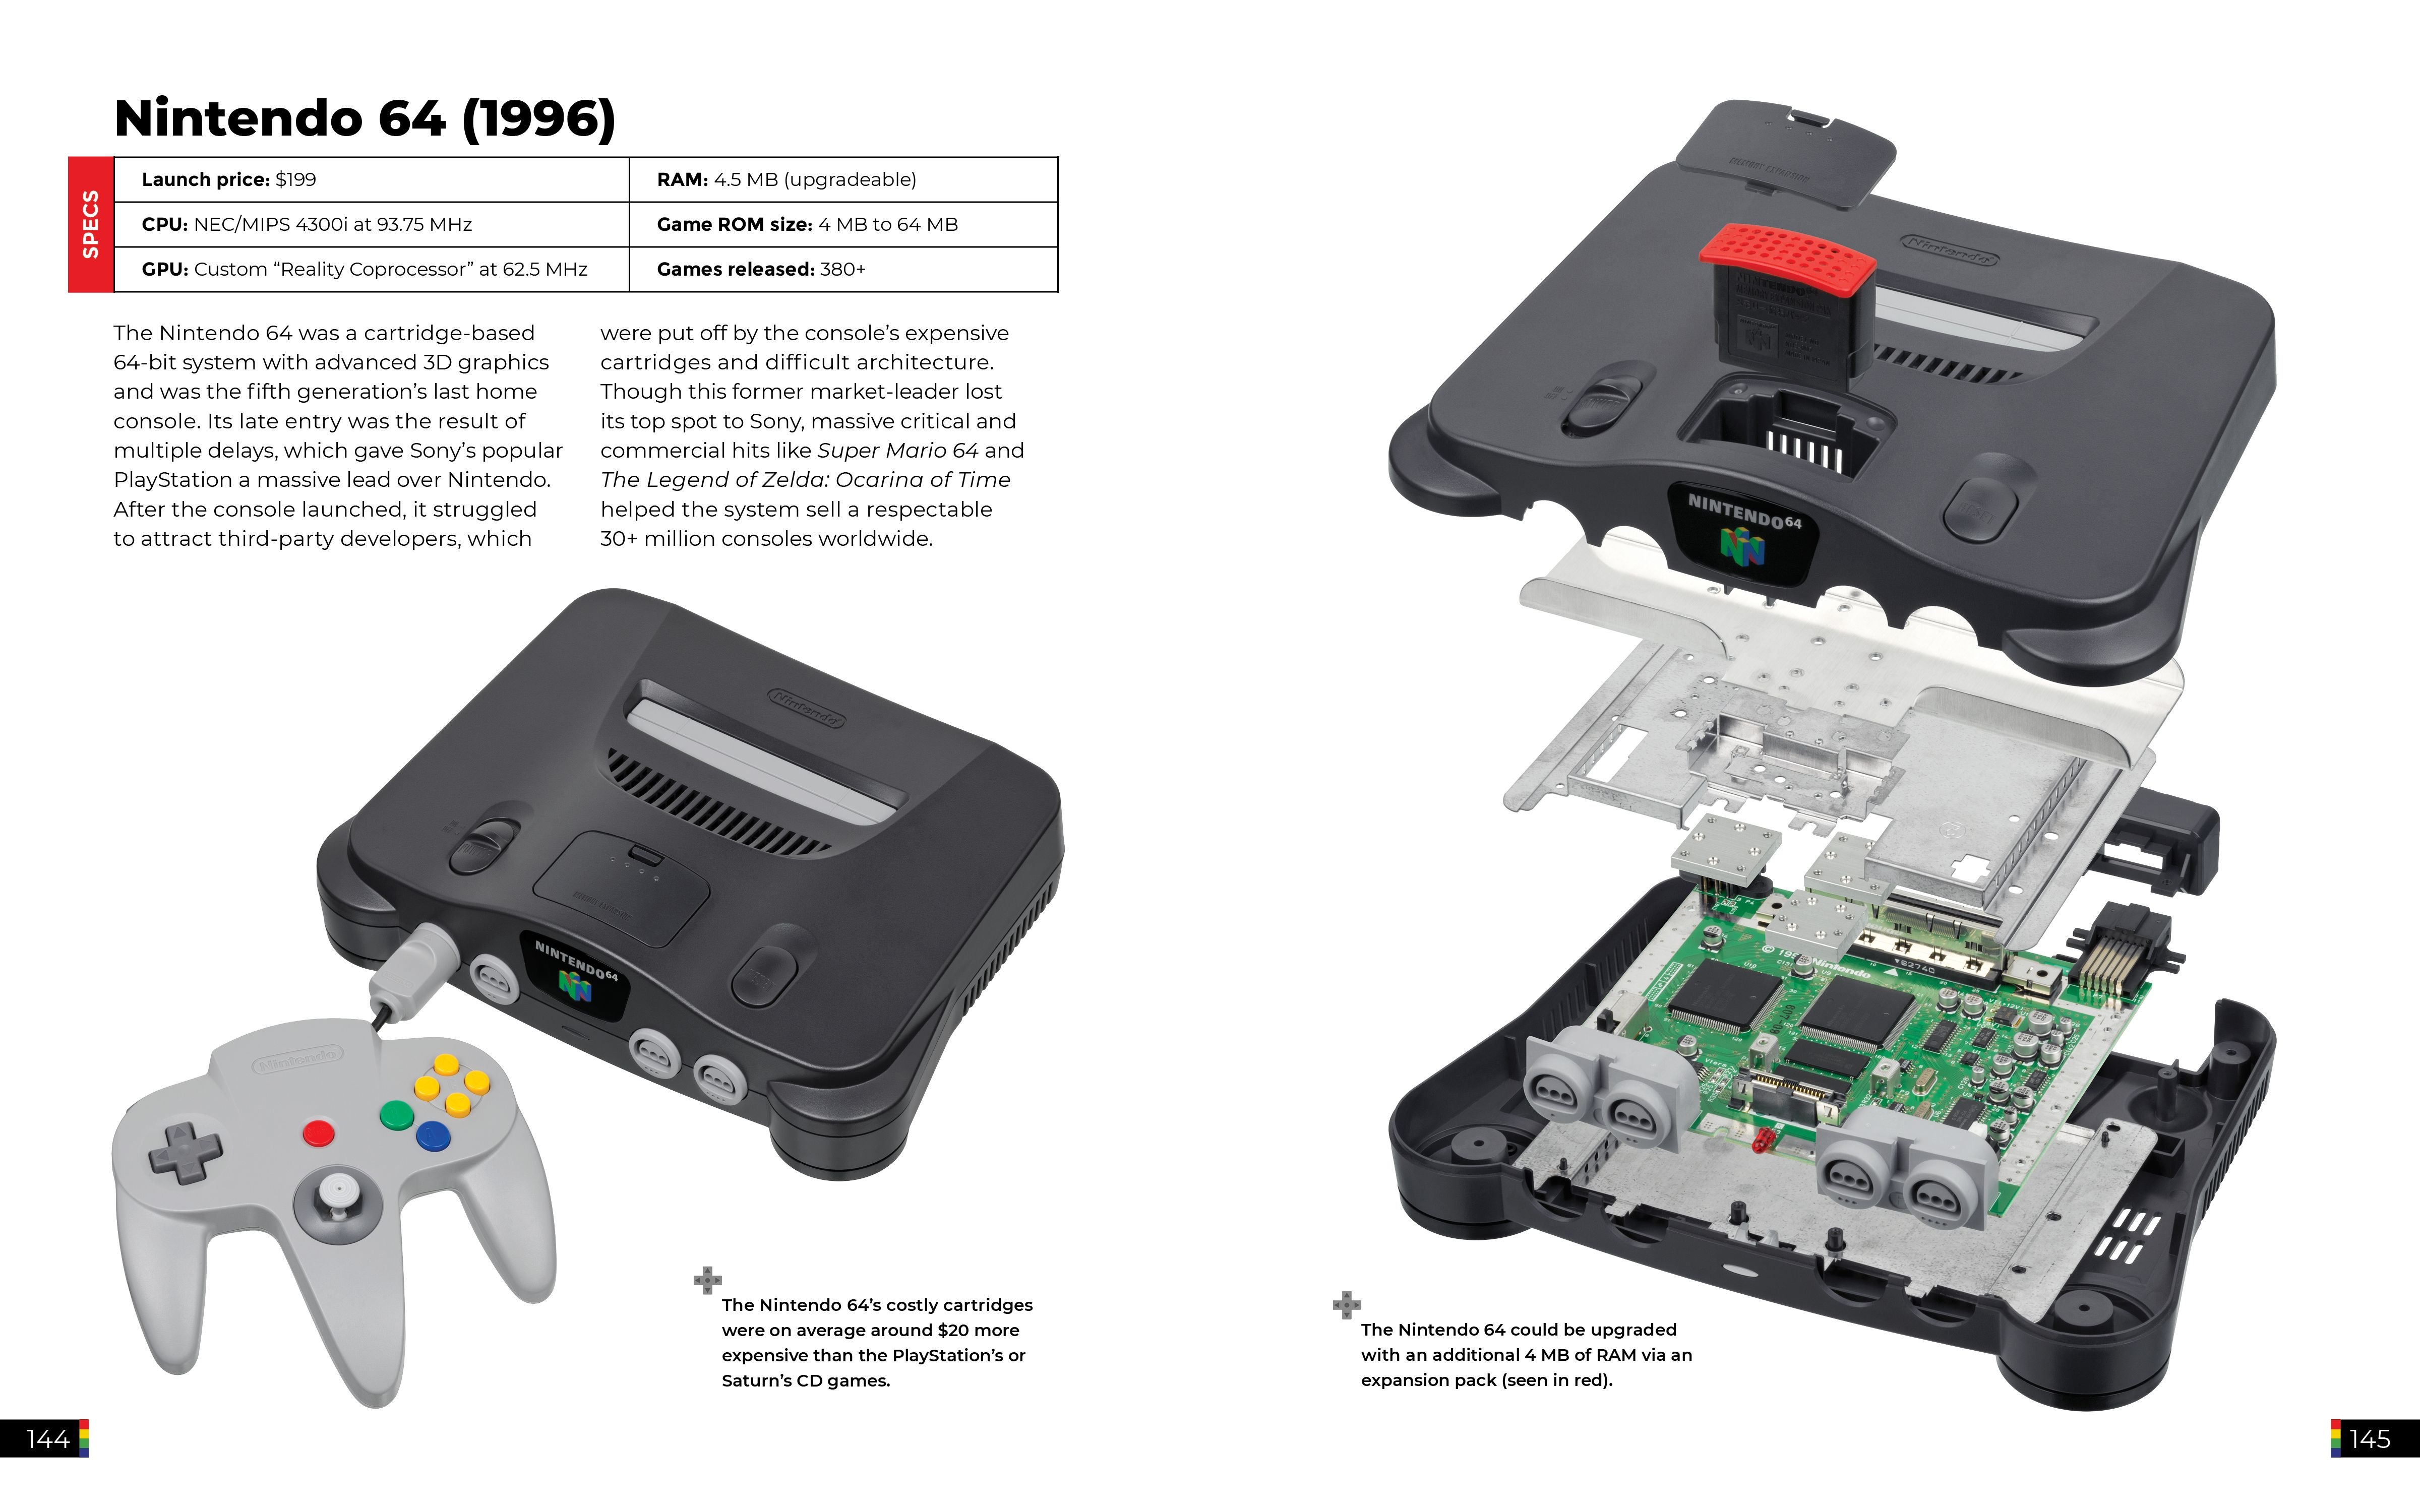 Nintendo 64 (1996) The Game Console Possibly the